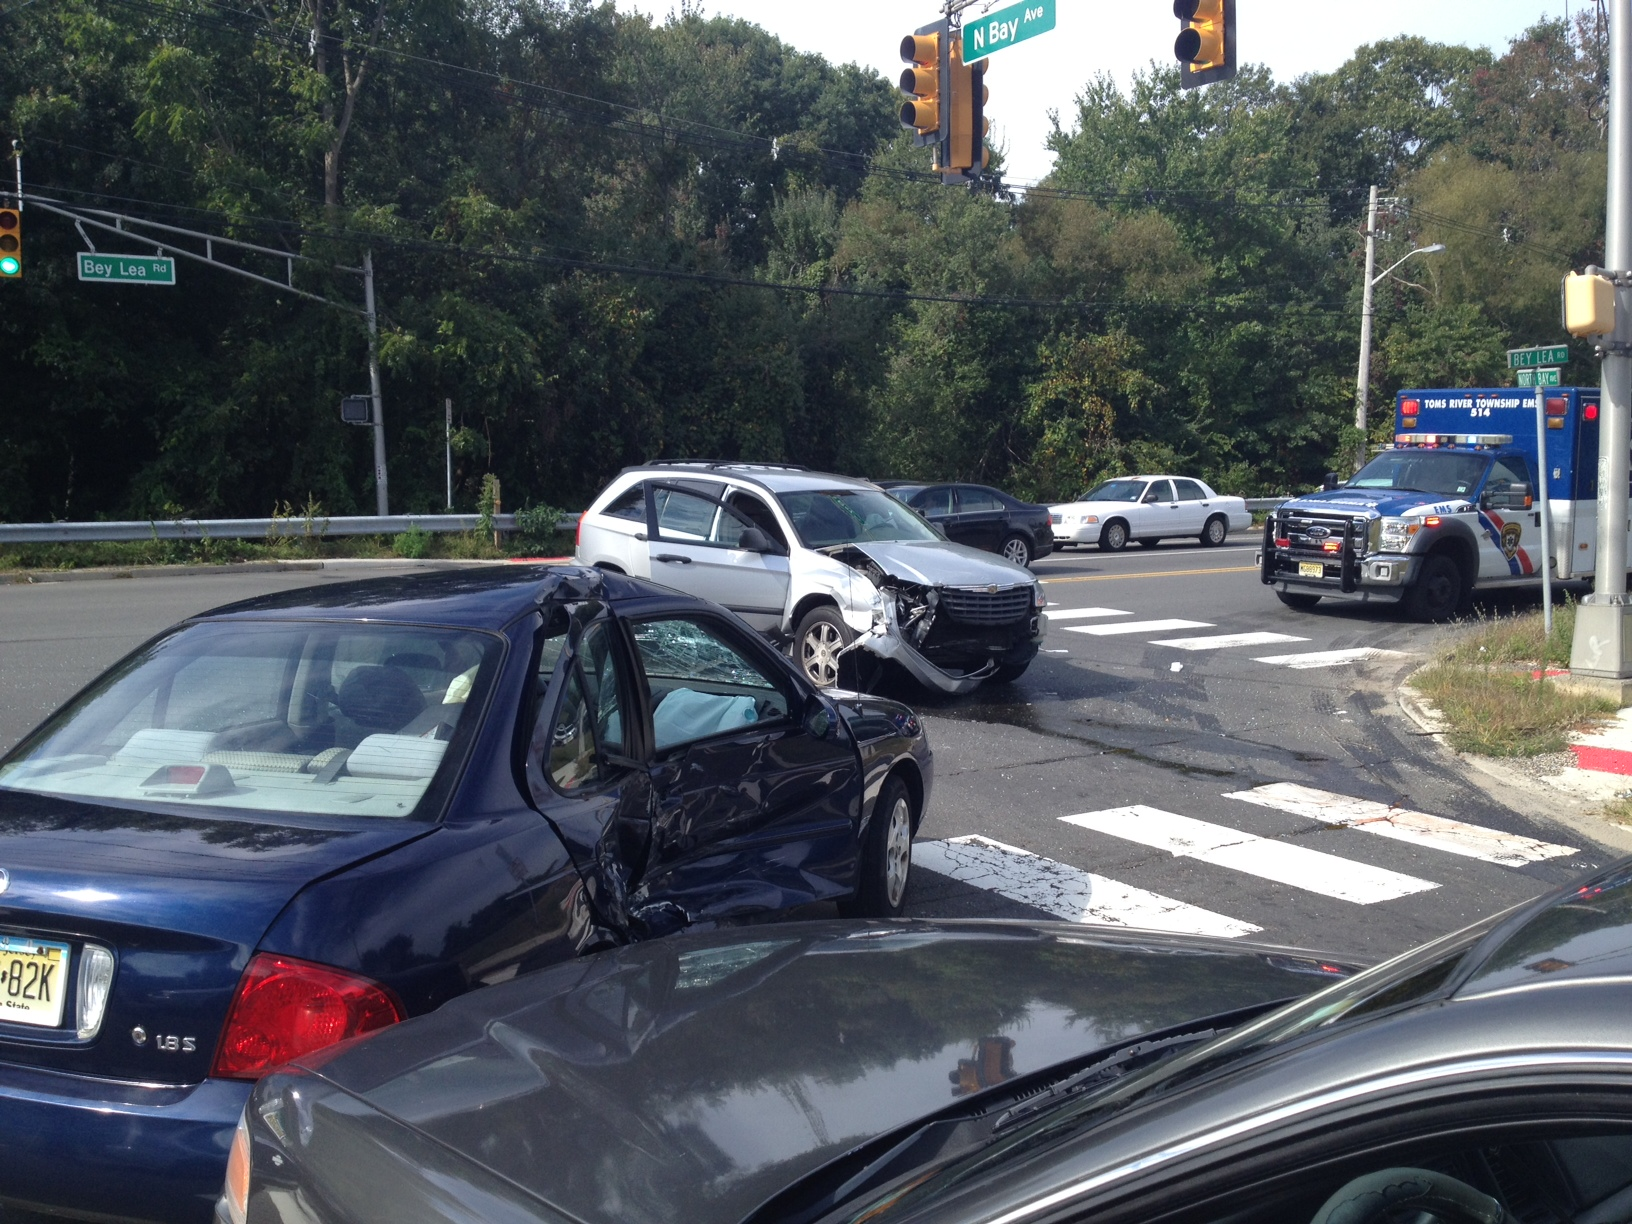 Traffic Accident | Brick, NJ Shorebeat -- News, Real Estate